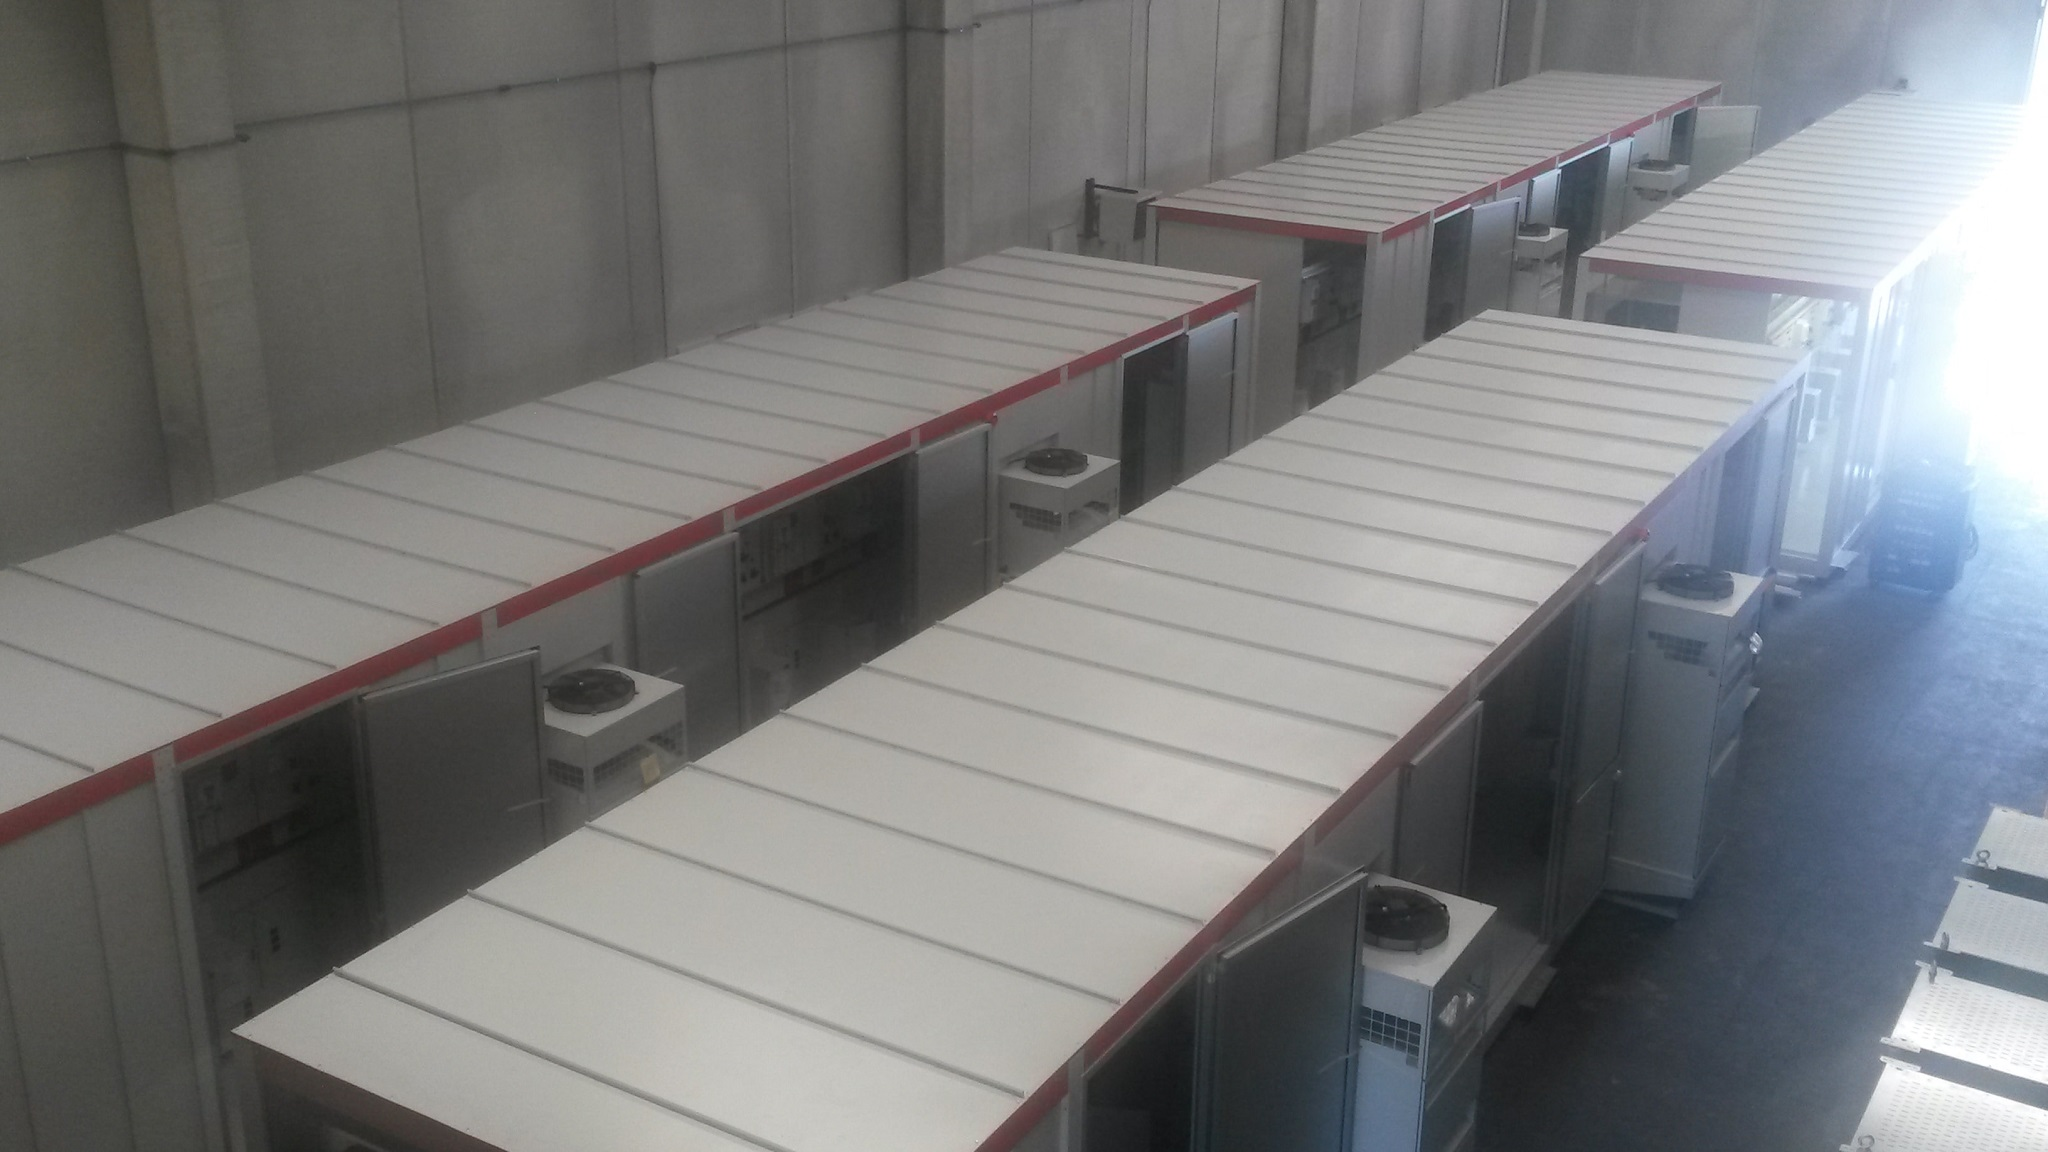 E-house compact substations, containing AIS air-insulated MV medium-voltage switchgear panels for Tunisia, north Africa